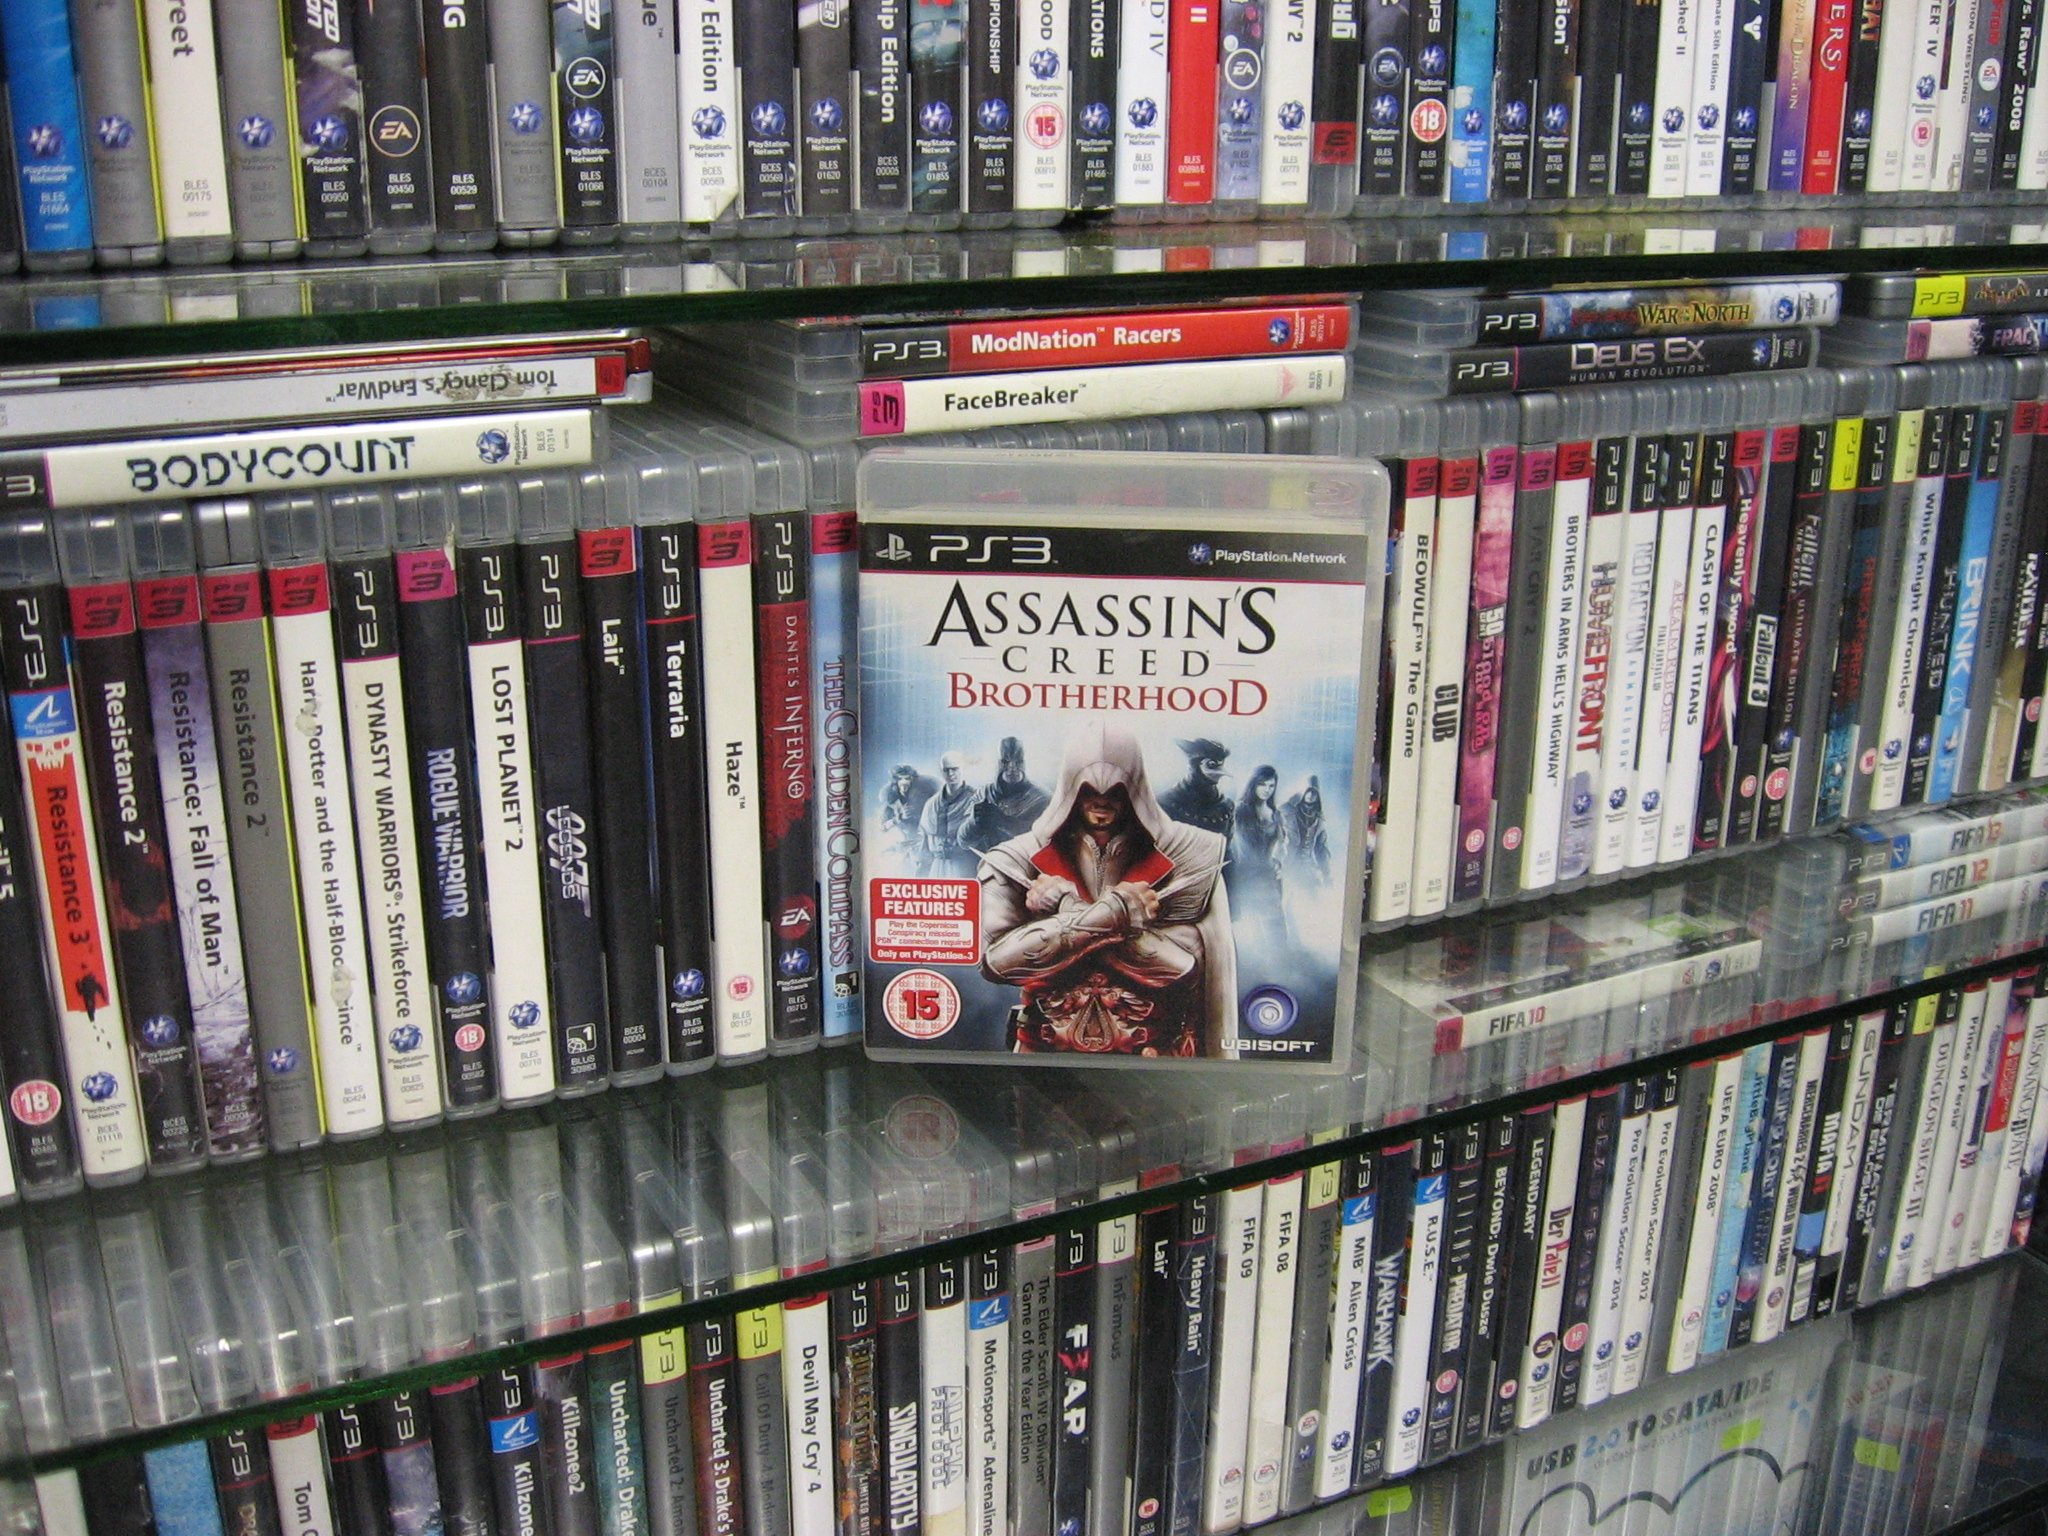 Assassins Creed Brotherhood - GRA Ps3 - Opole 0018